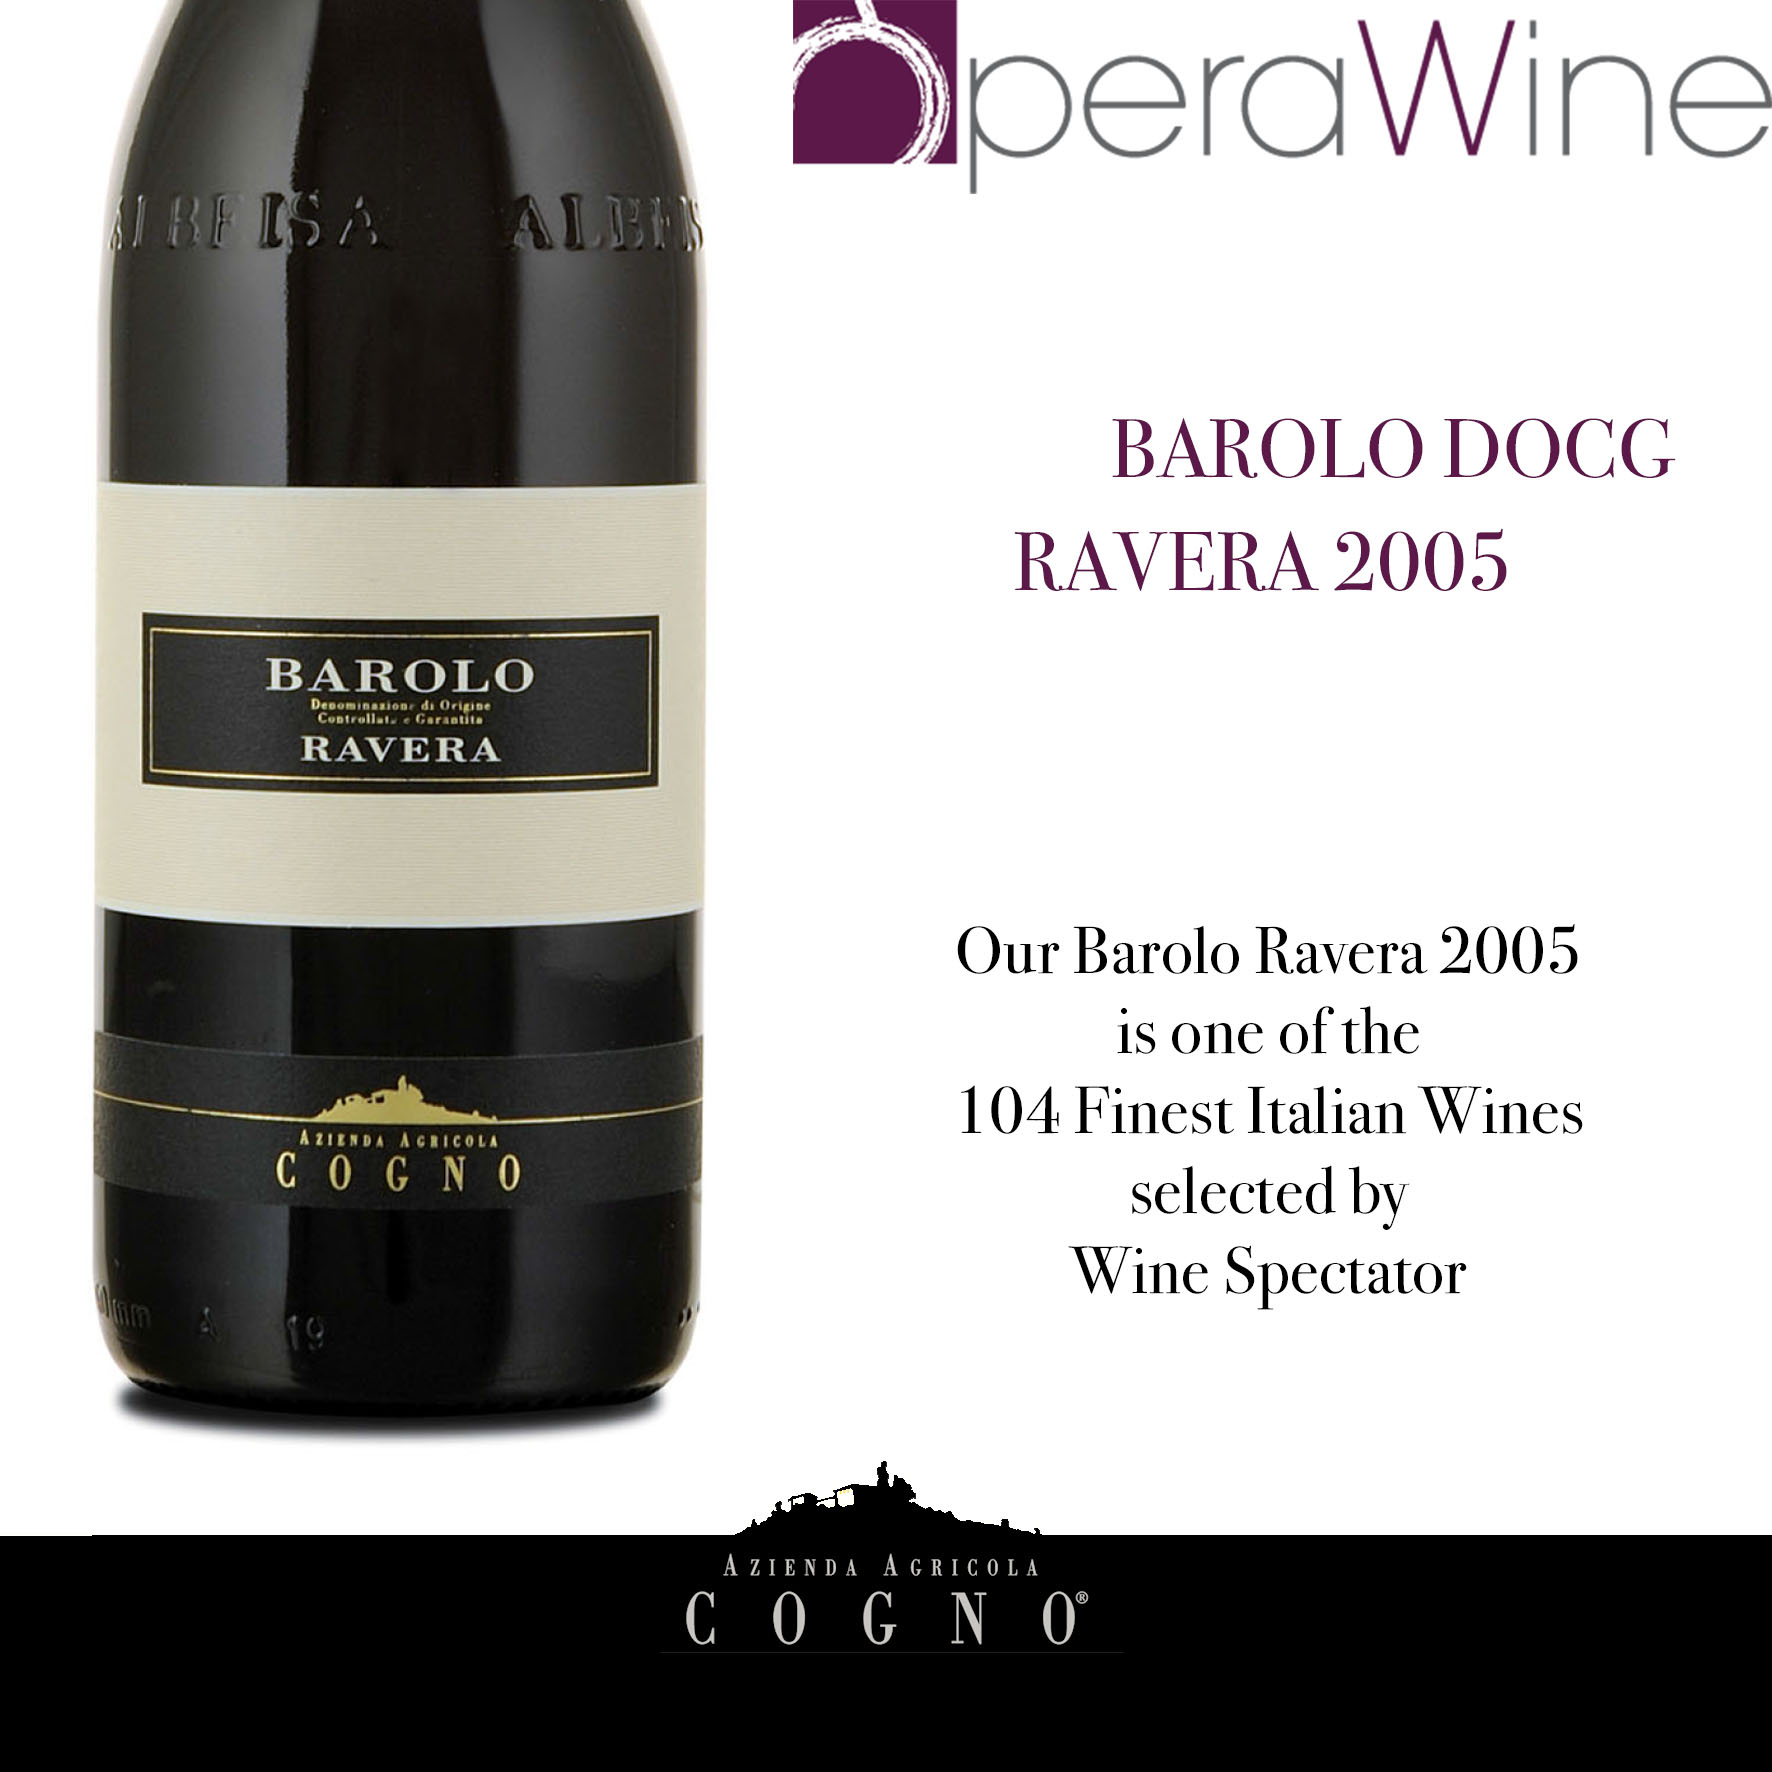 OperaWine 2017: Barolo Ravera 2005 is among the finest 104 Italian wines of the world